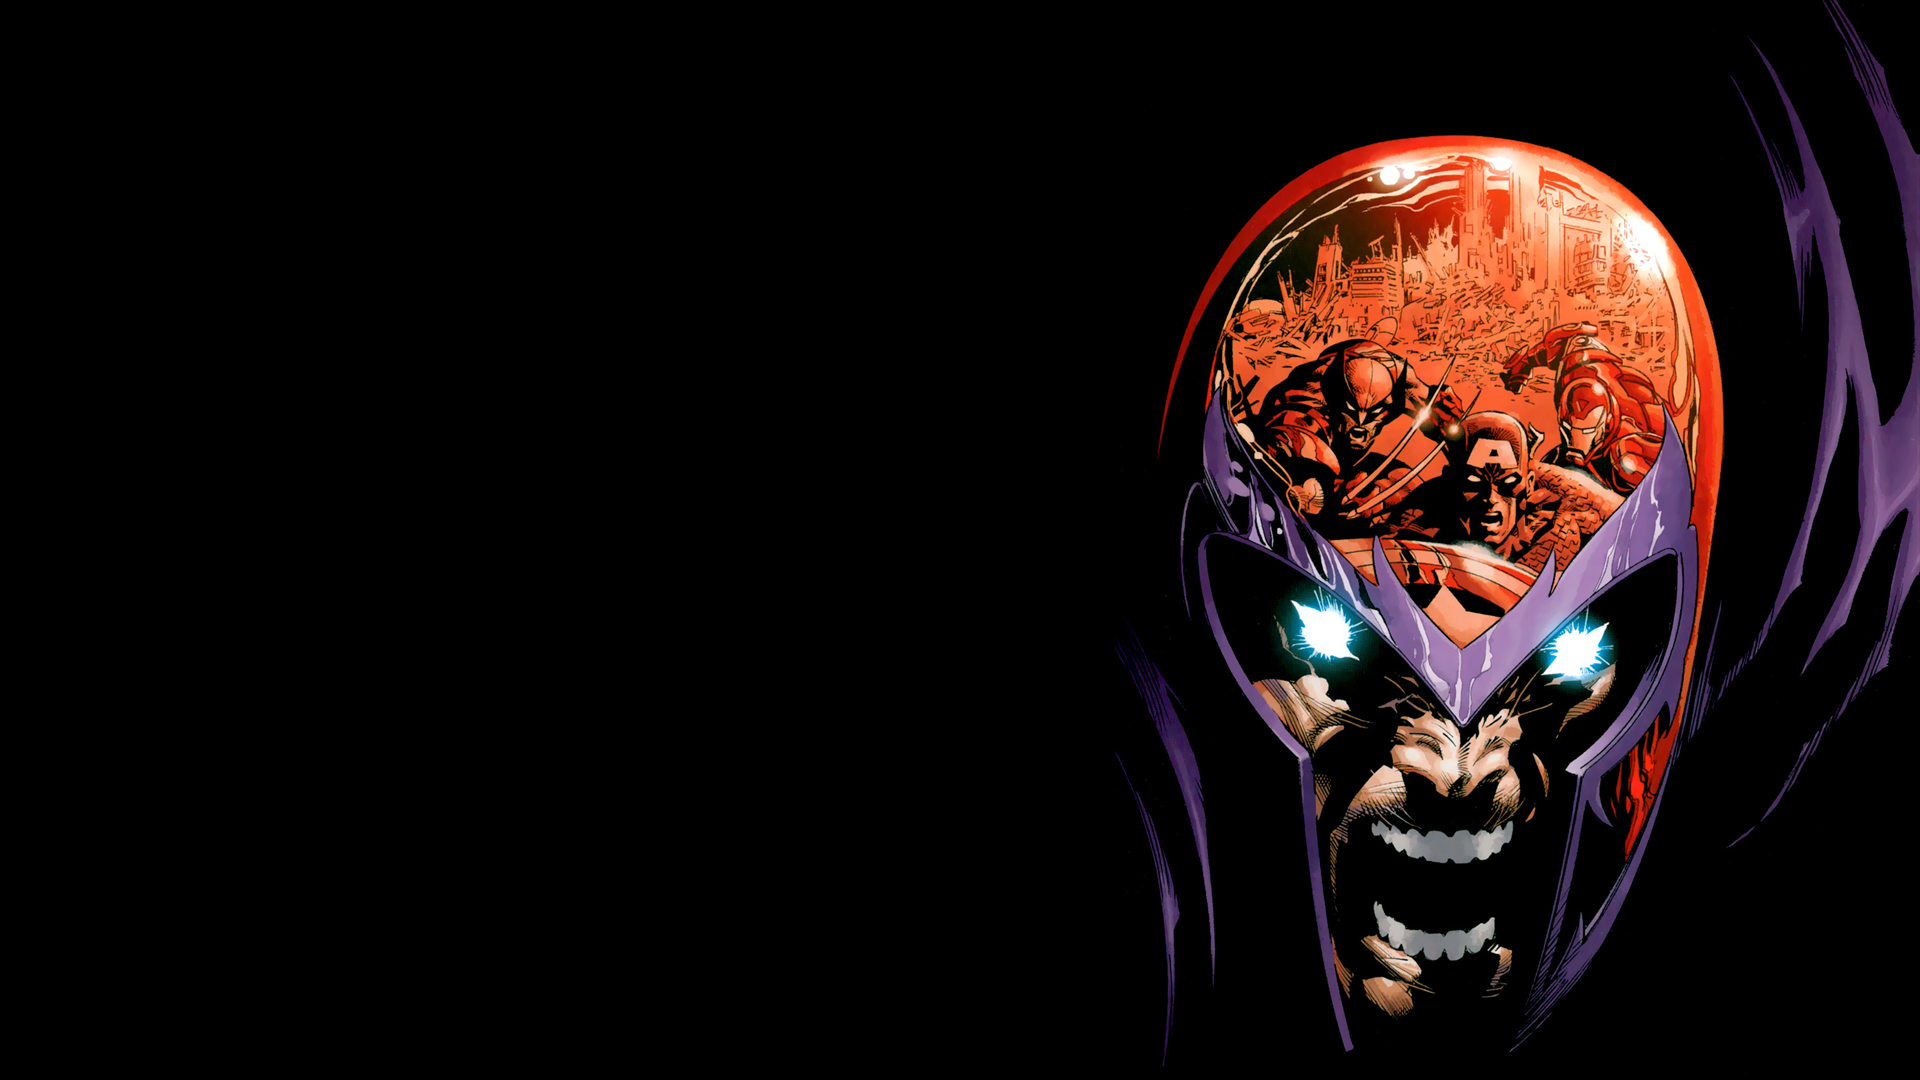 Magneto Defending Wallpapers Magneto Defending Myspace Backgrounds 1920x1080